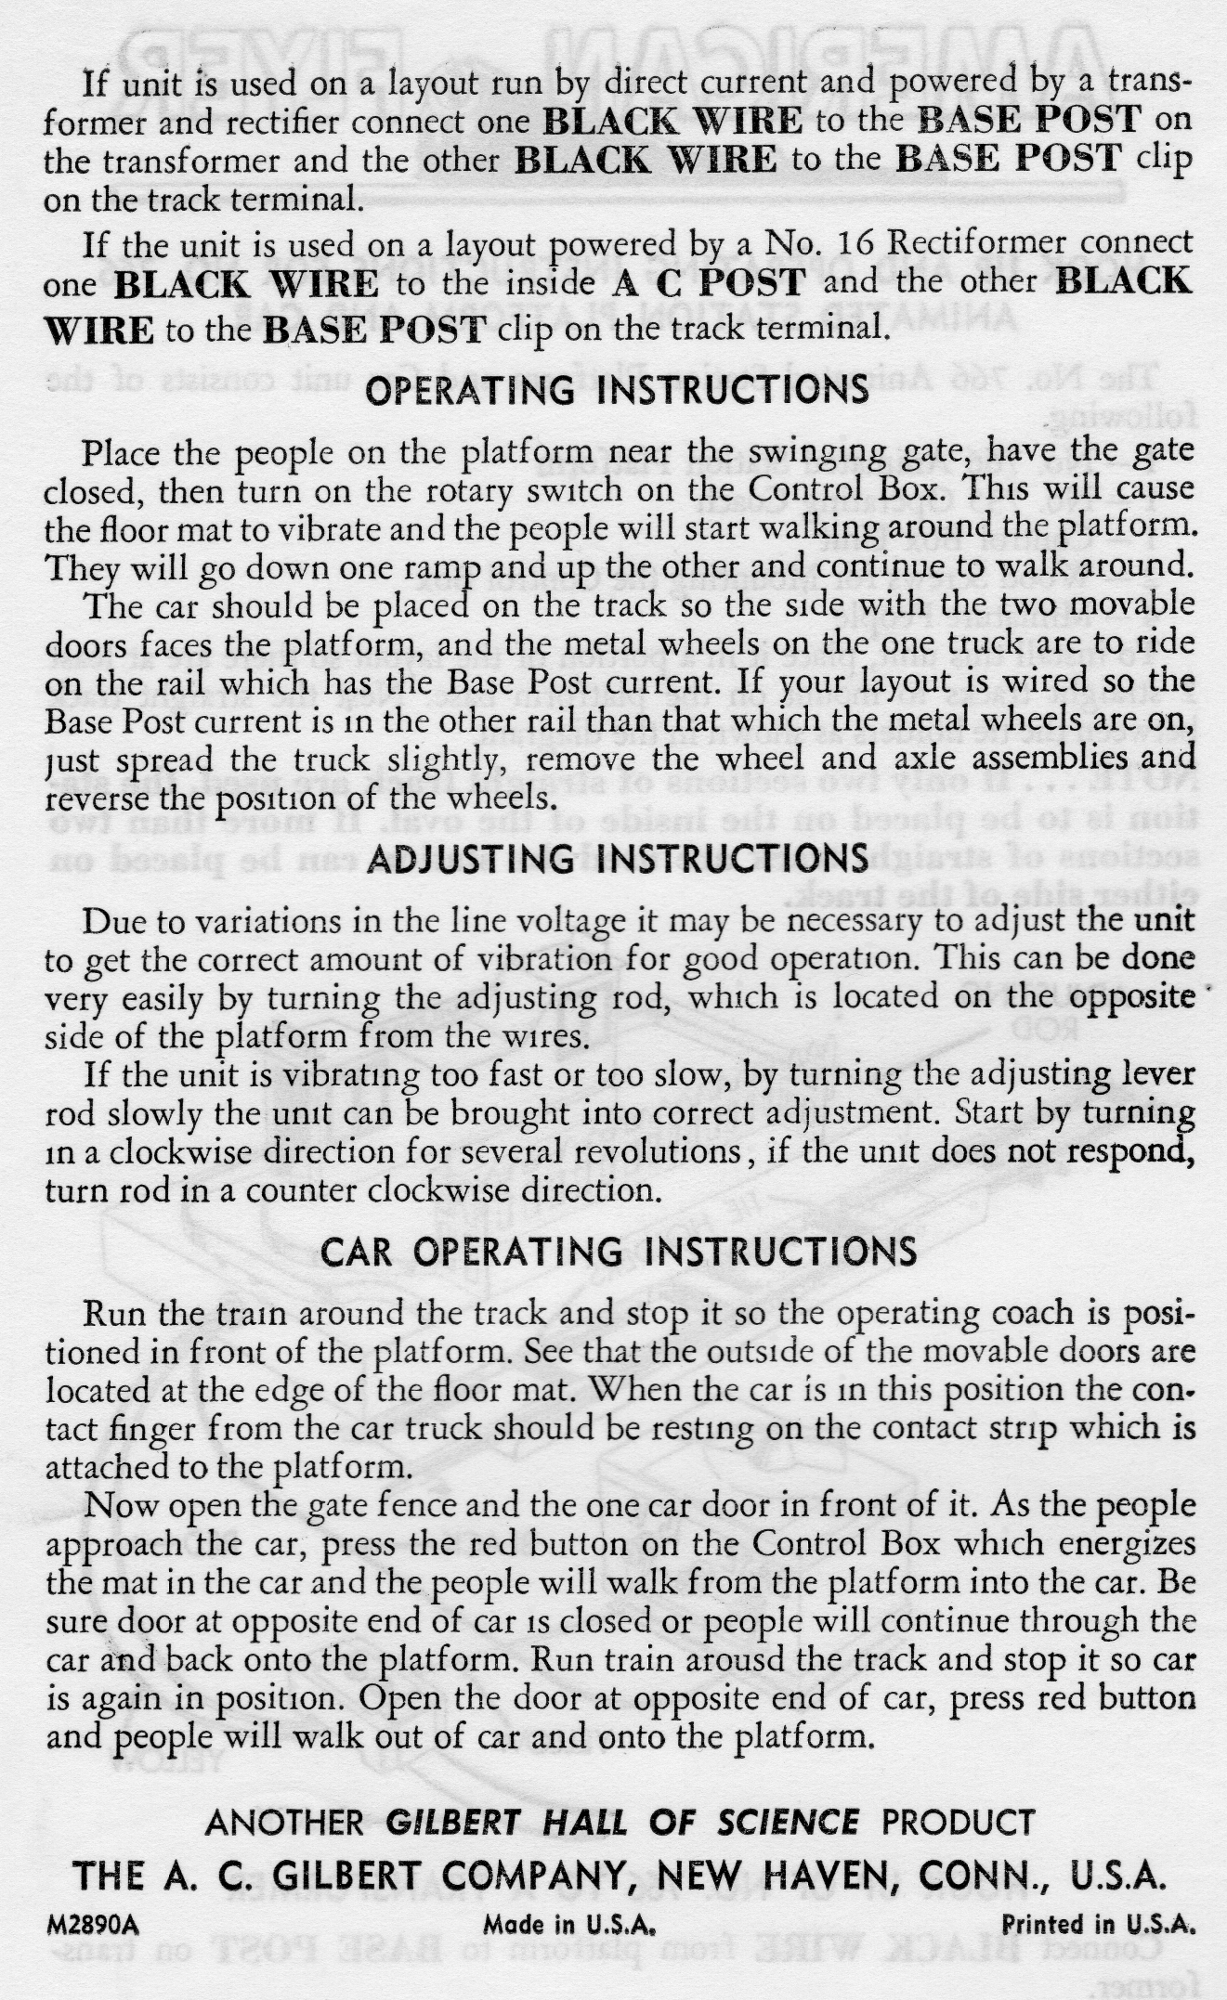 Hook Up and Operating Instructions for No. 766 Animated Station Platform & Car - Page 2